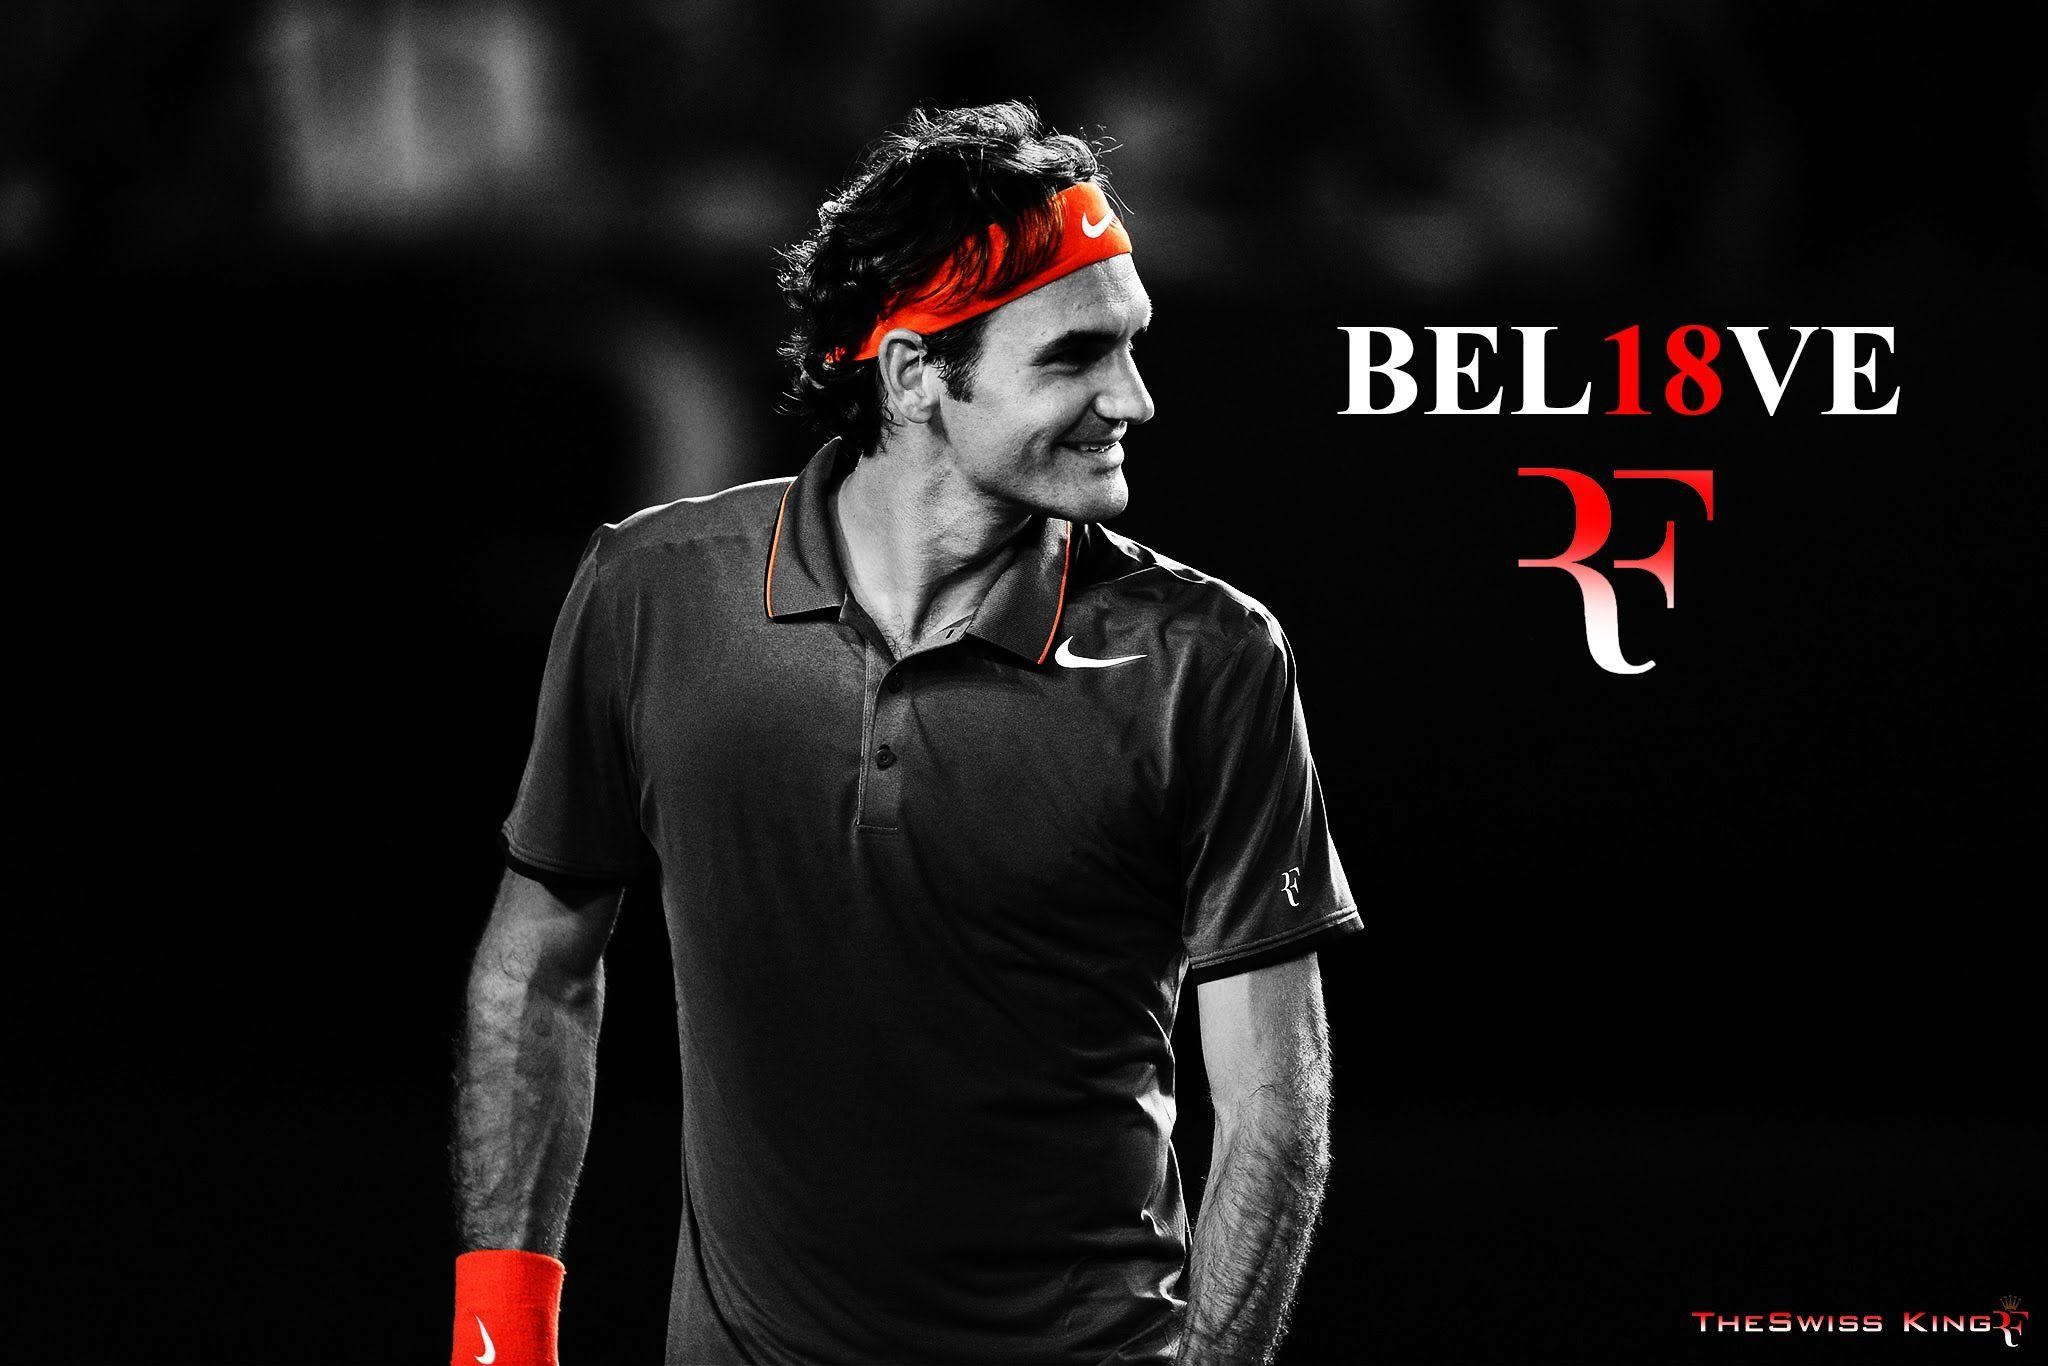 28 Roger Federer HD Quality Background Images GsFDcY 2048x1366